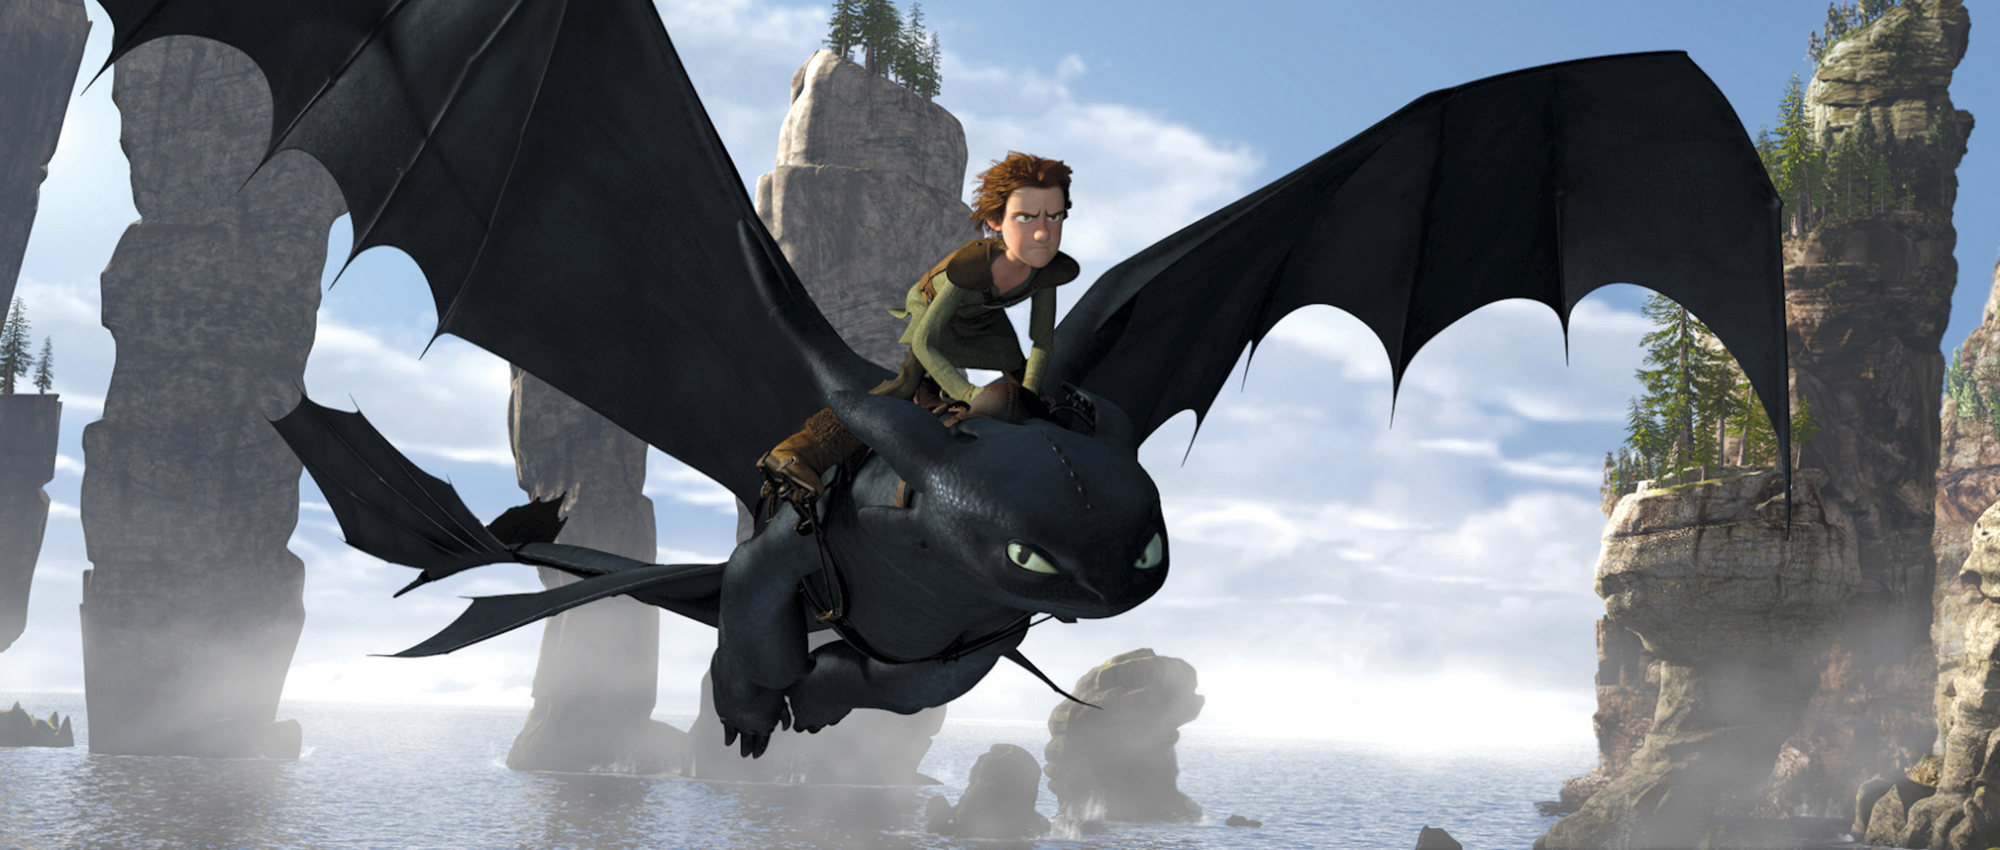 HOW TO TRAIN YOUR DRAGON TV Series Trailers | Collider